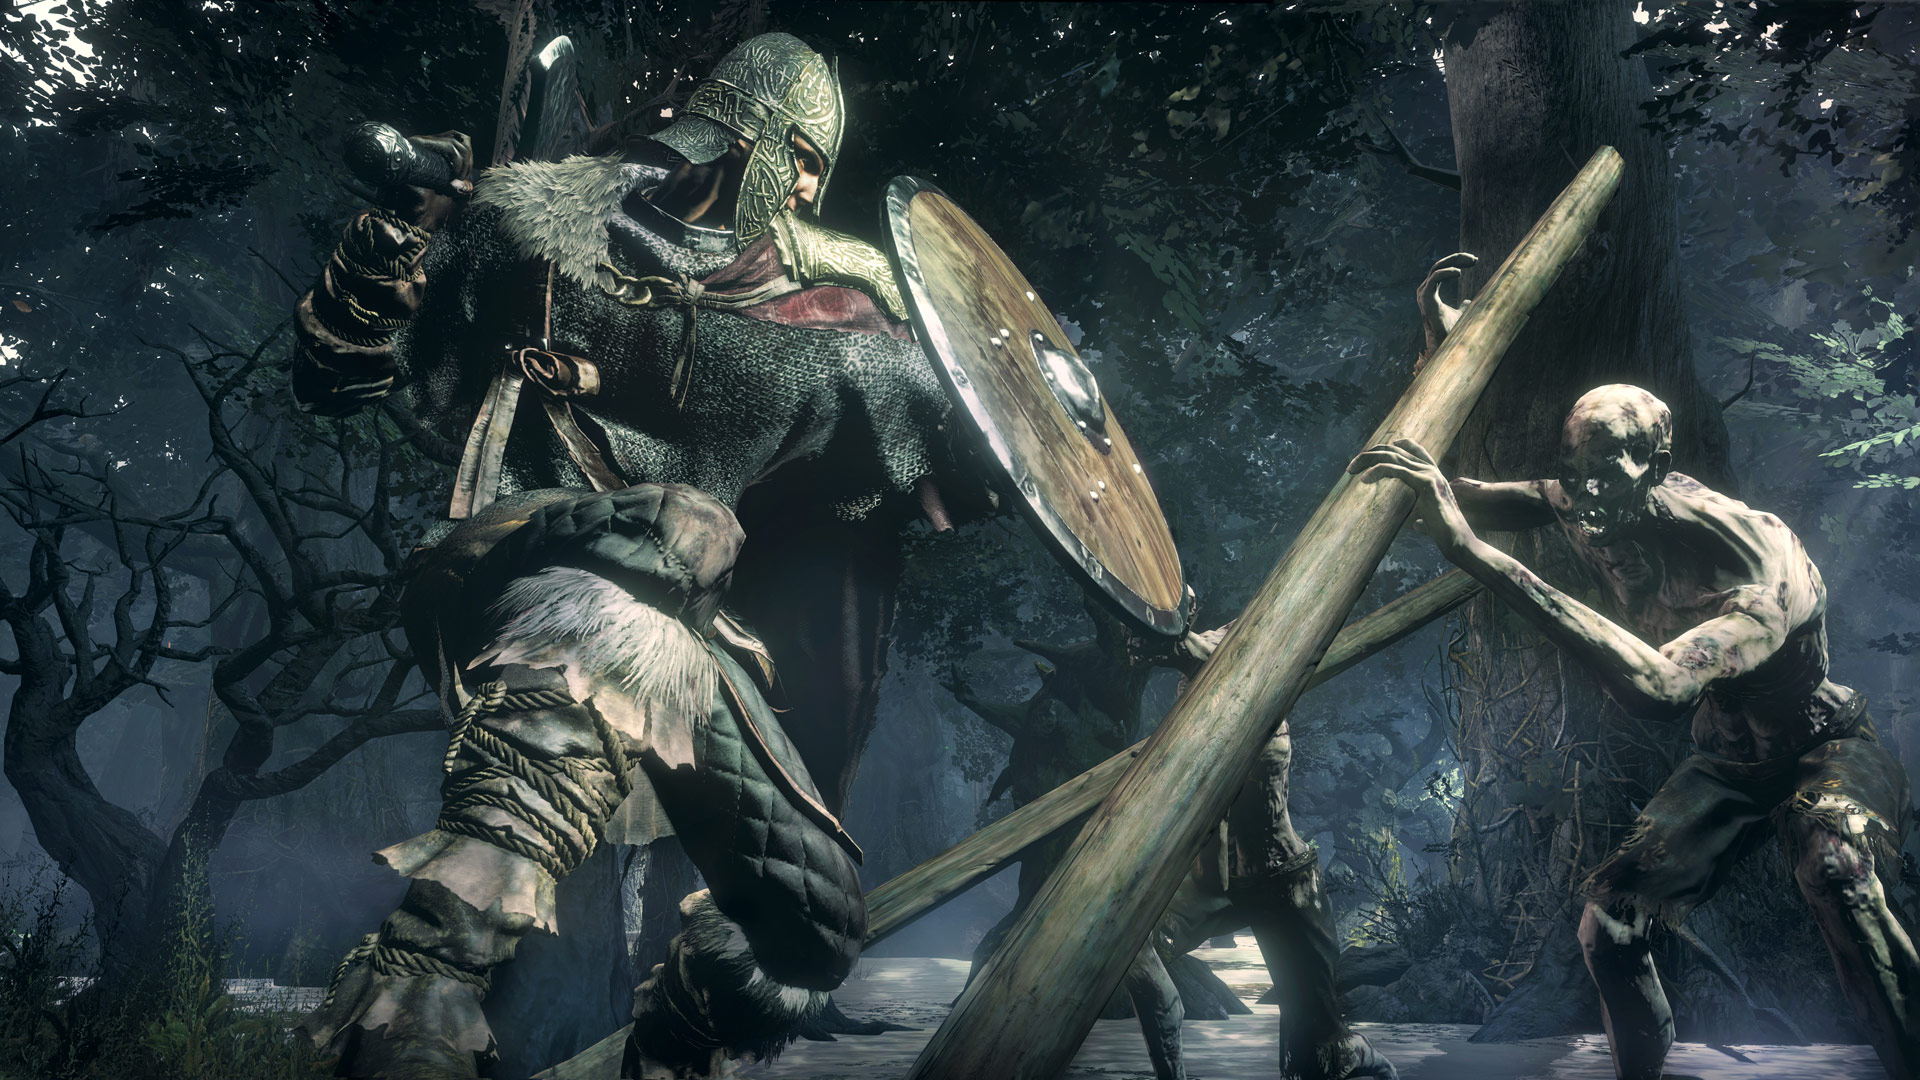 See the multiplayer side of dark souls in new